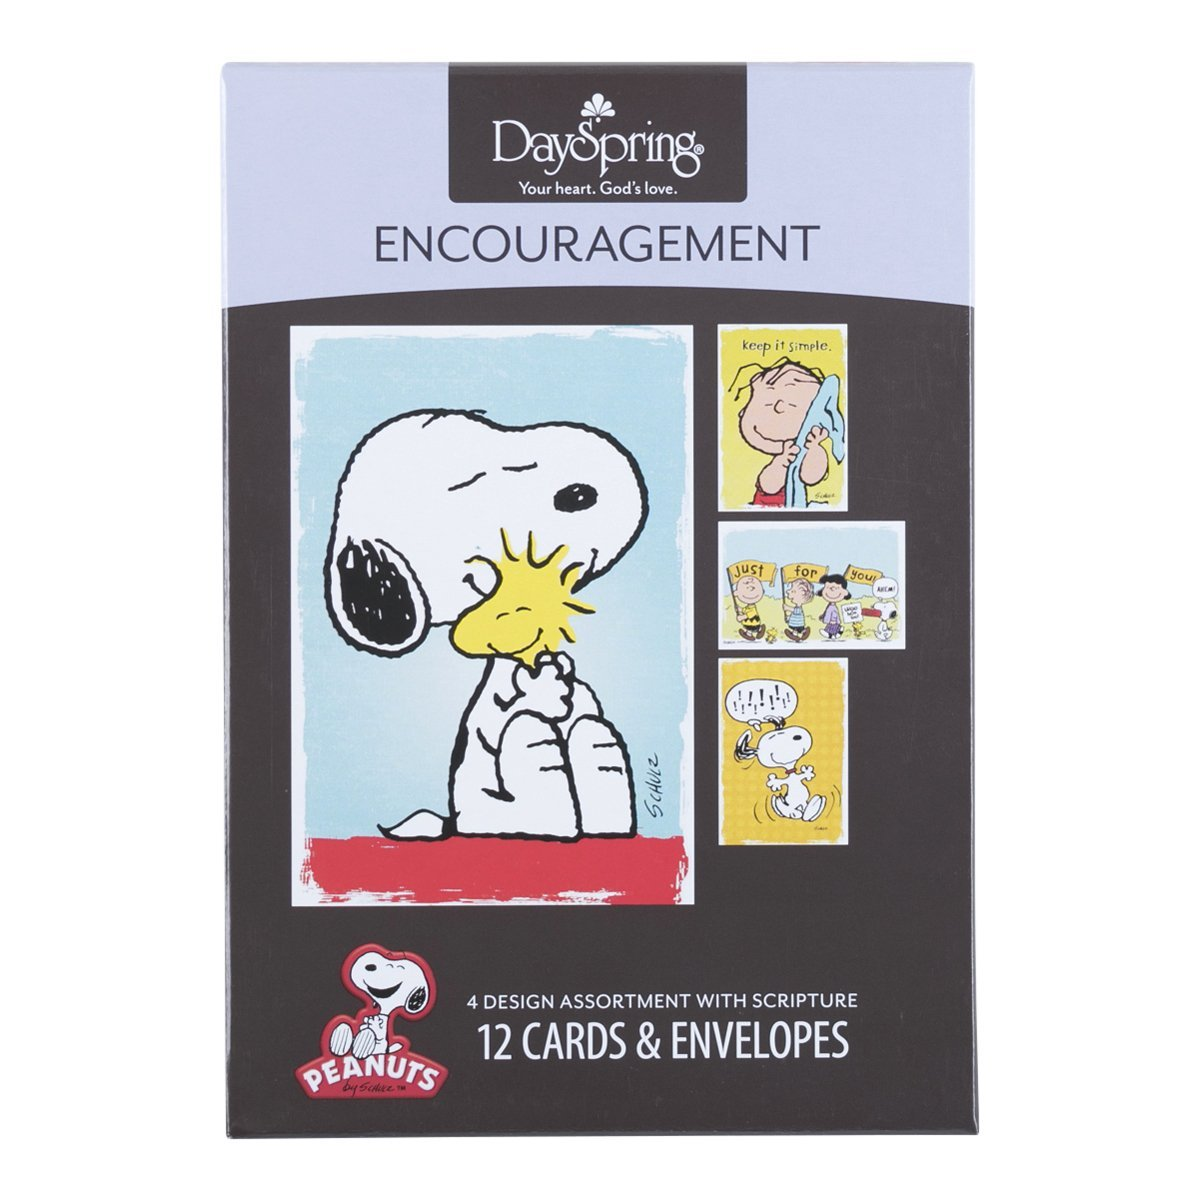 DaySpring Encouragement Greeting Card with Embossed White Envelopes